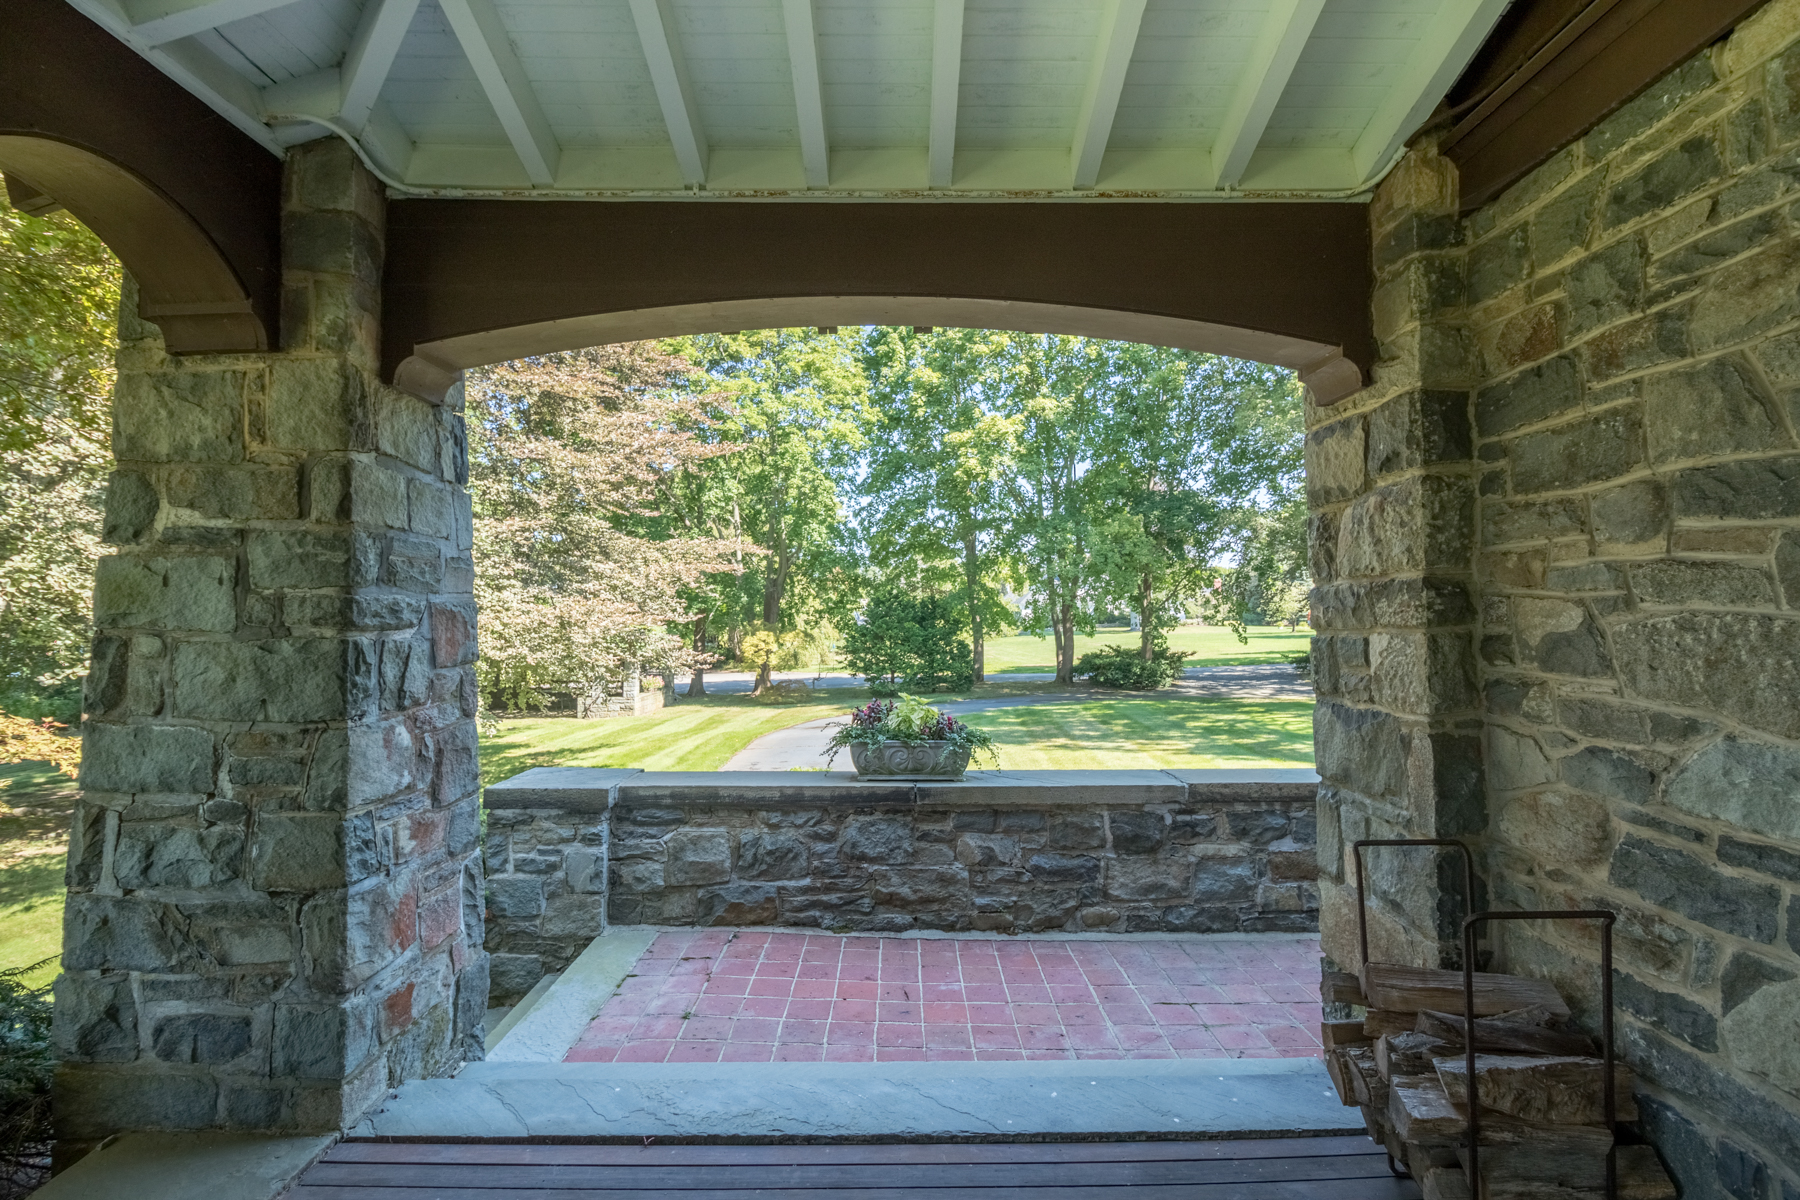 Additional photo for property listing at 305 Rumstick Rd, Barrington, RI 305 Rumstick Rd Barrington, Rhode Island 02806 United States